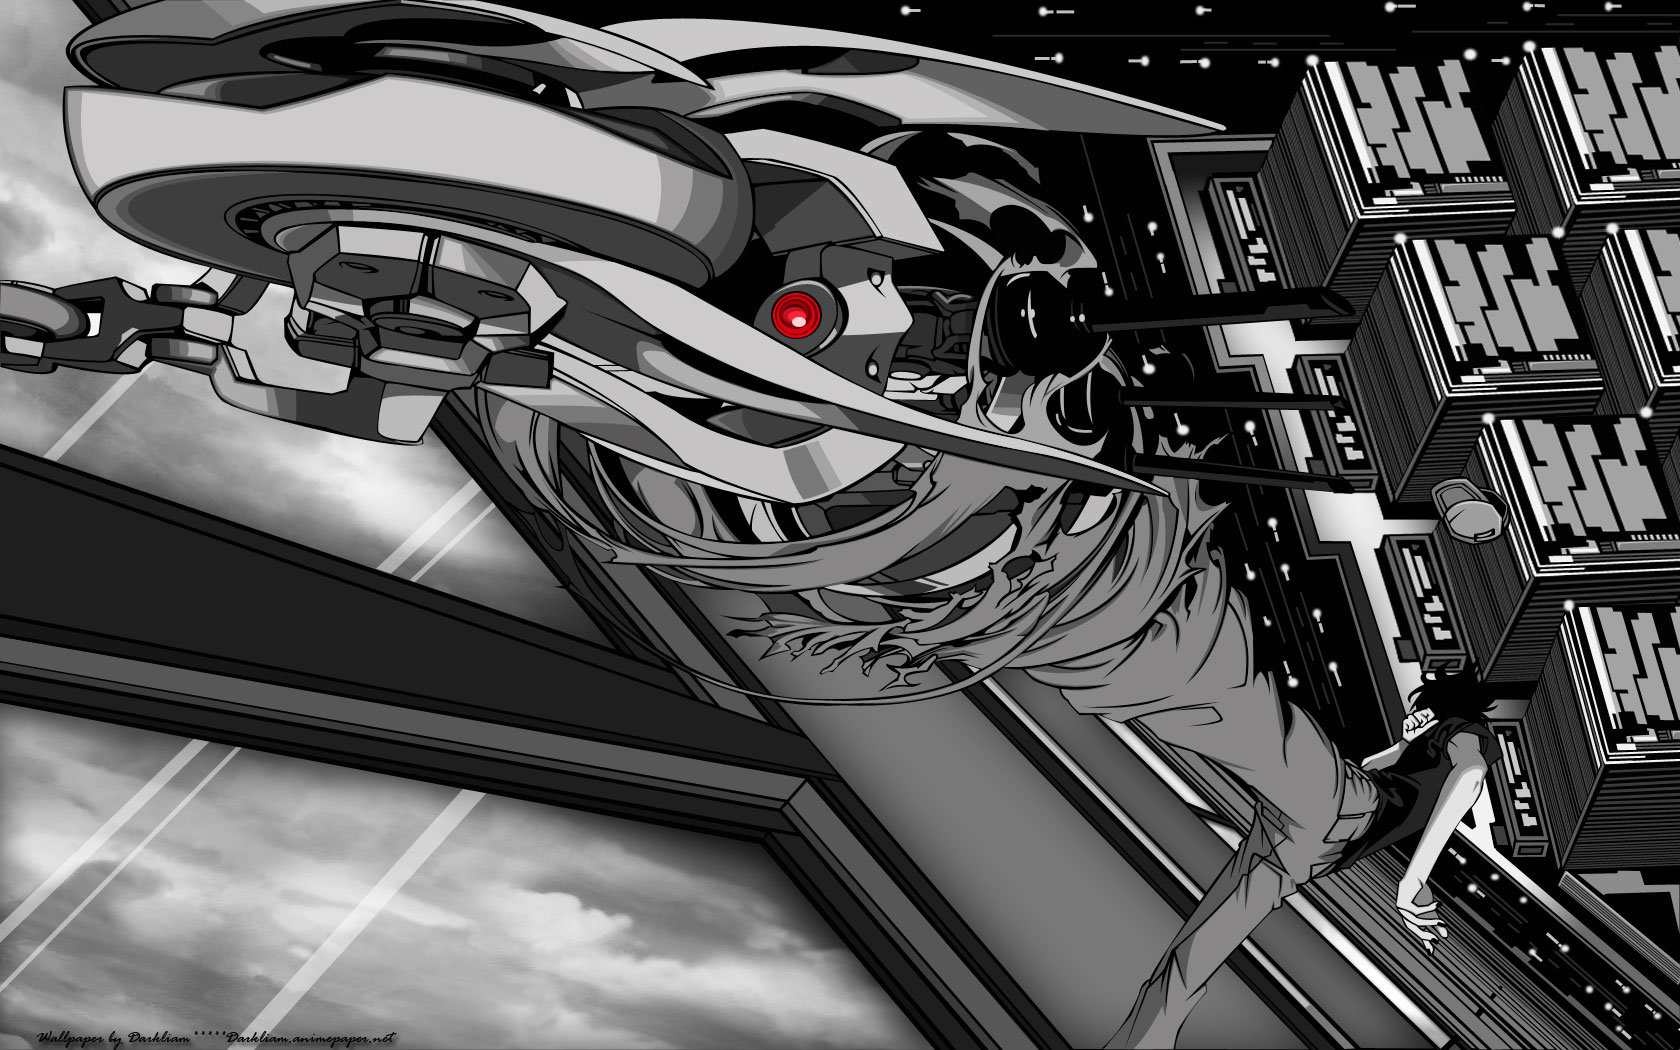 Awesome Air Gear free wallpaper ID:84988 for hd 1680x1050 desktop